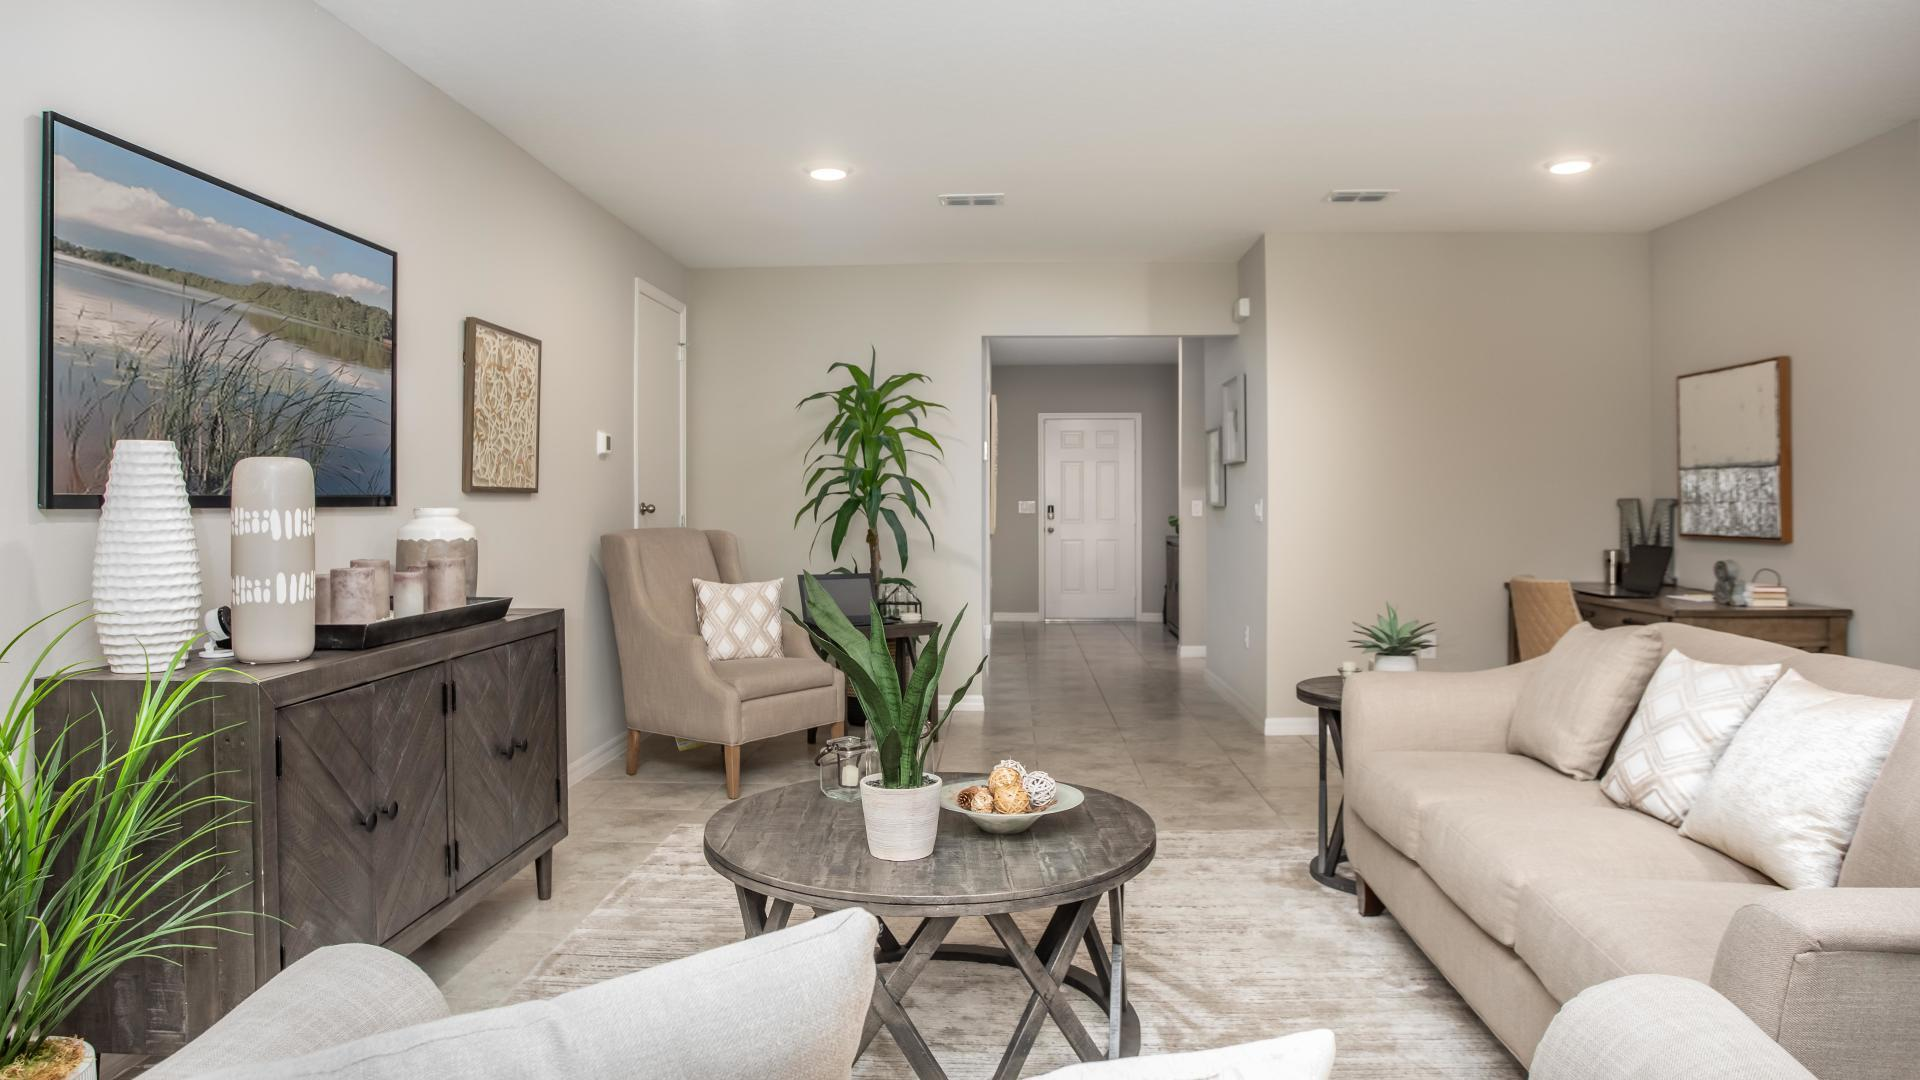 Living Area featured in the Mesquite By Maronda Homes in Daytona Beach, FL